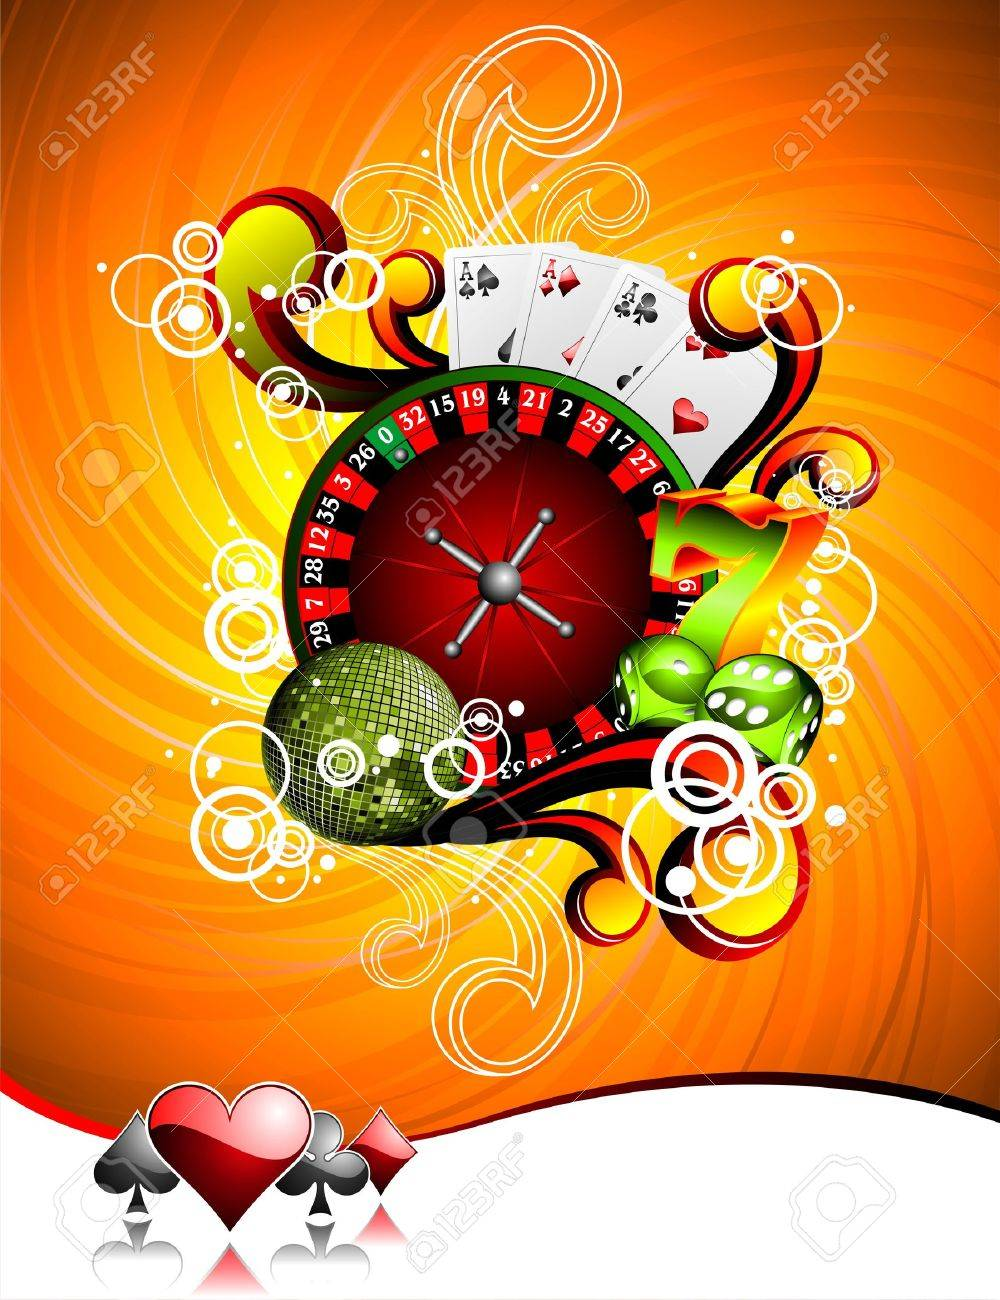 illustration on a casino theme with roulette wheel, playing cards and dices. Stock Vector - 7418969